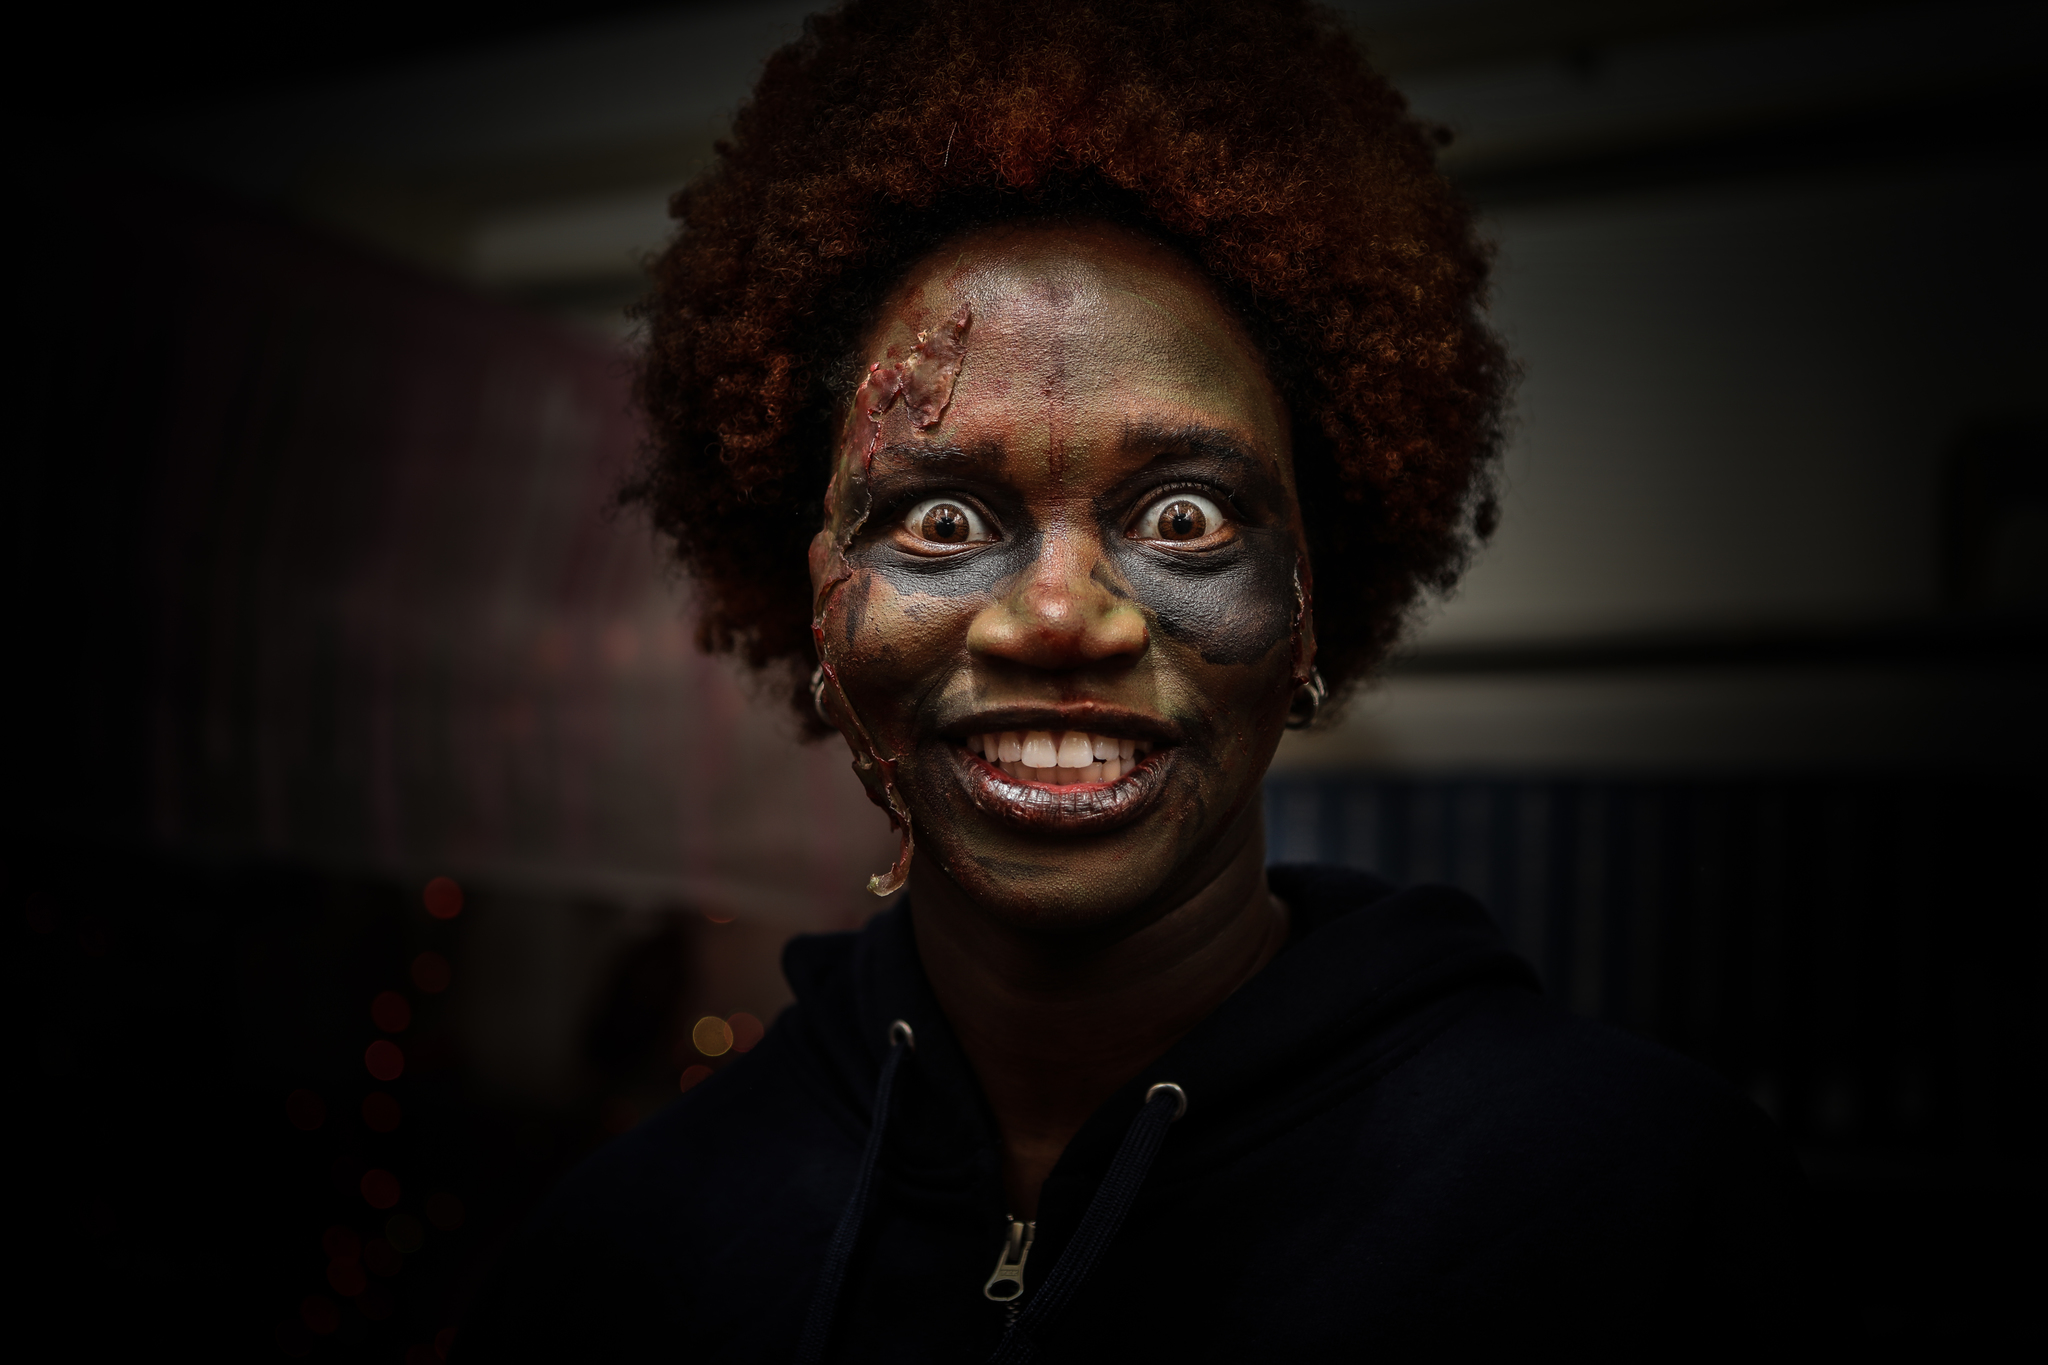 Haunted library zombie actor